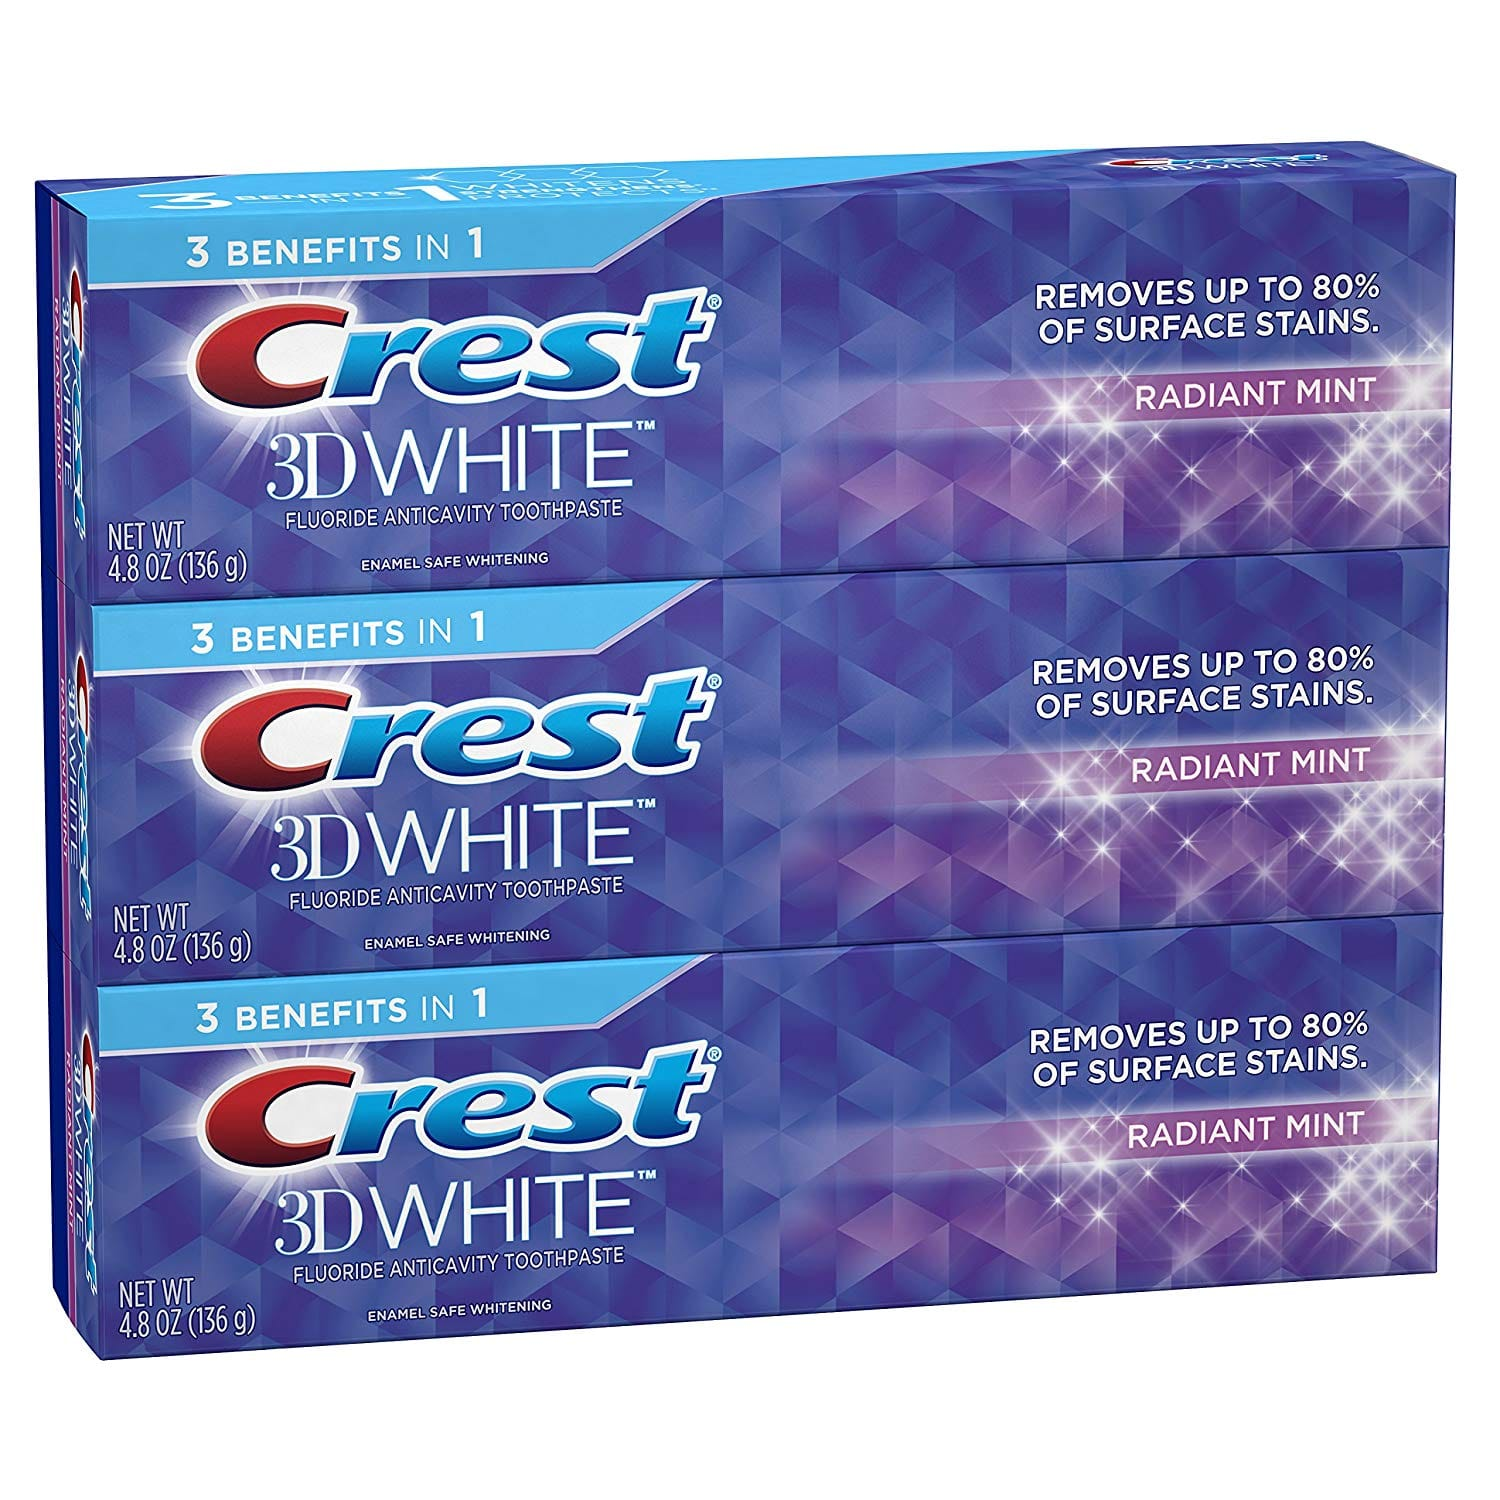 Crest 3D White Toothpaste Radiant Mint 4.8 oz (3 pack) $5.98